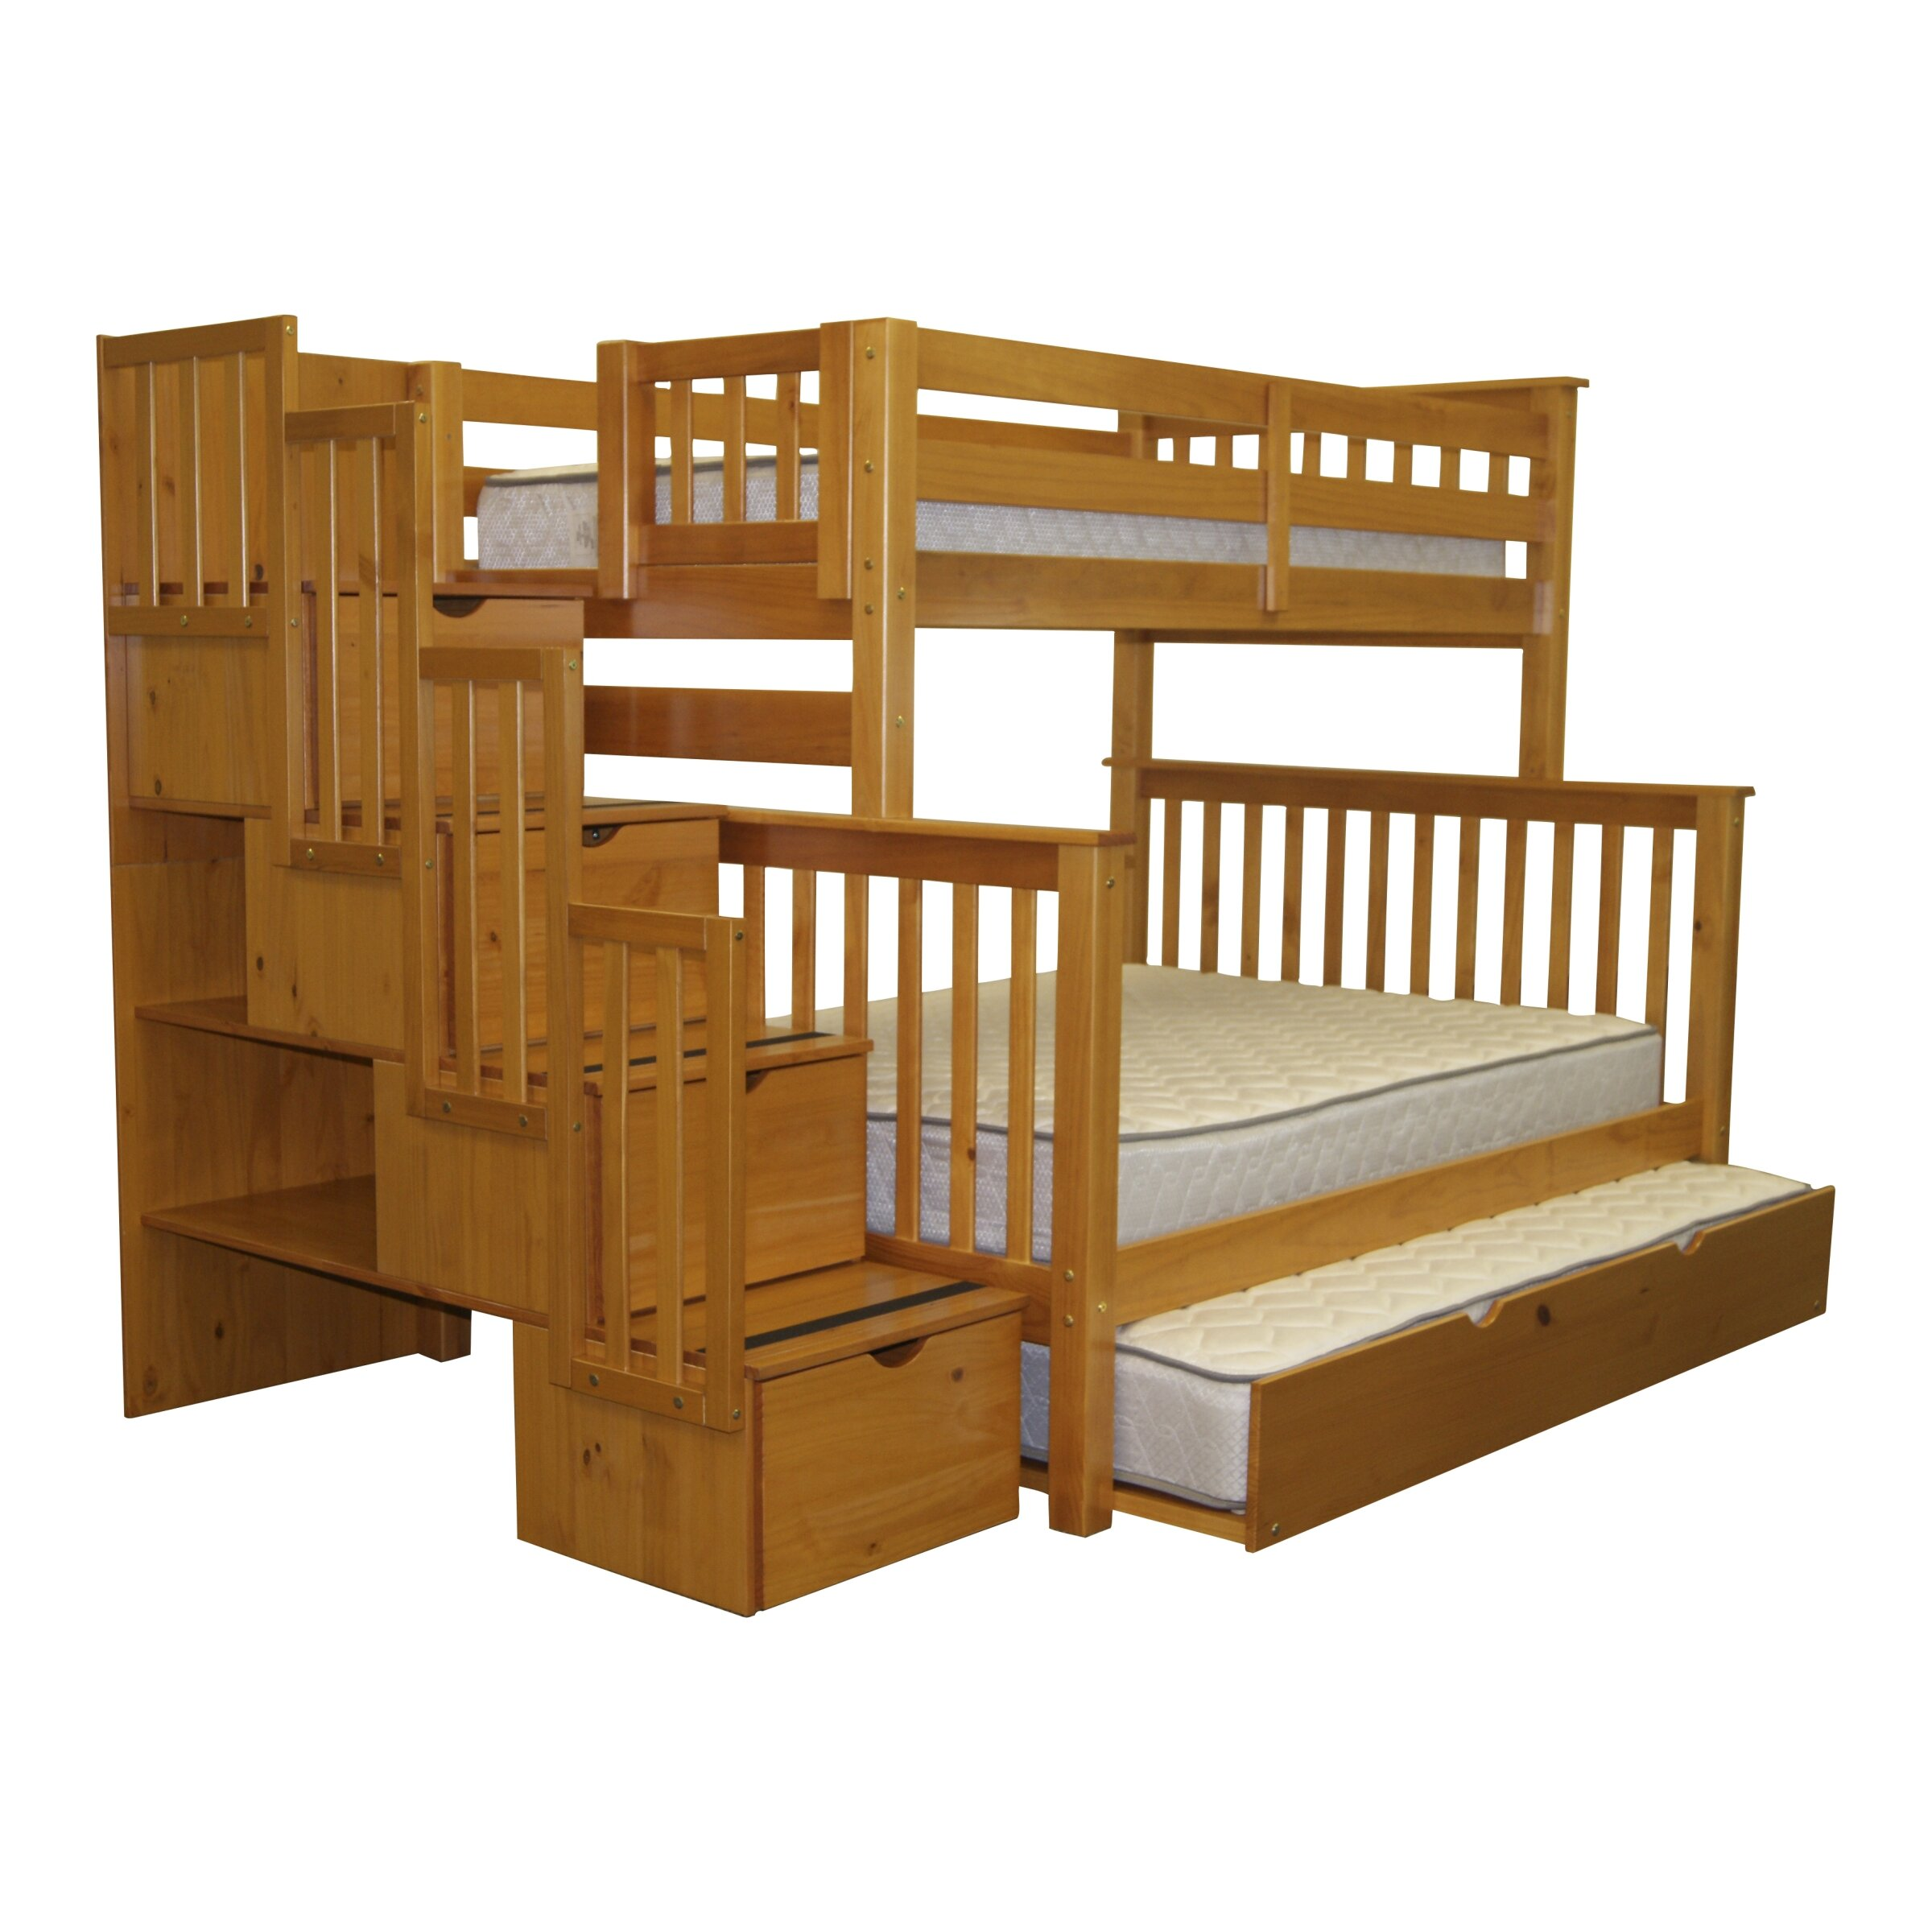 Trundle beds for adults - Twin Over Full Bunk Bed With Trundle